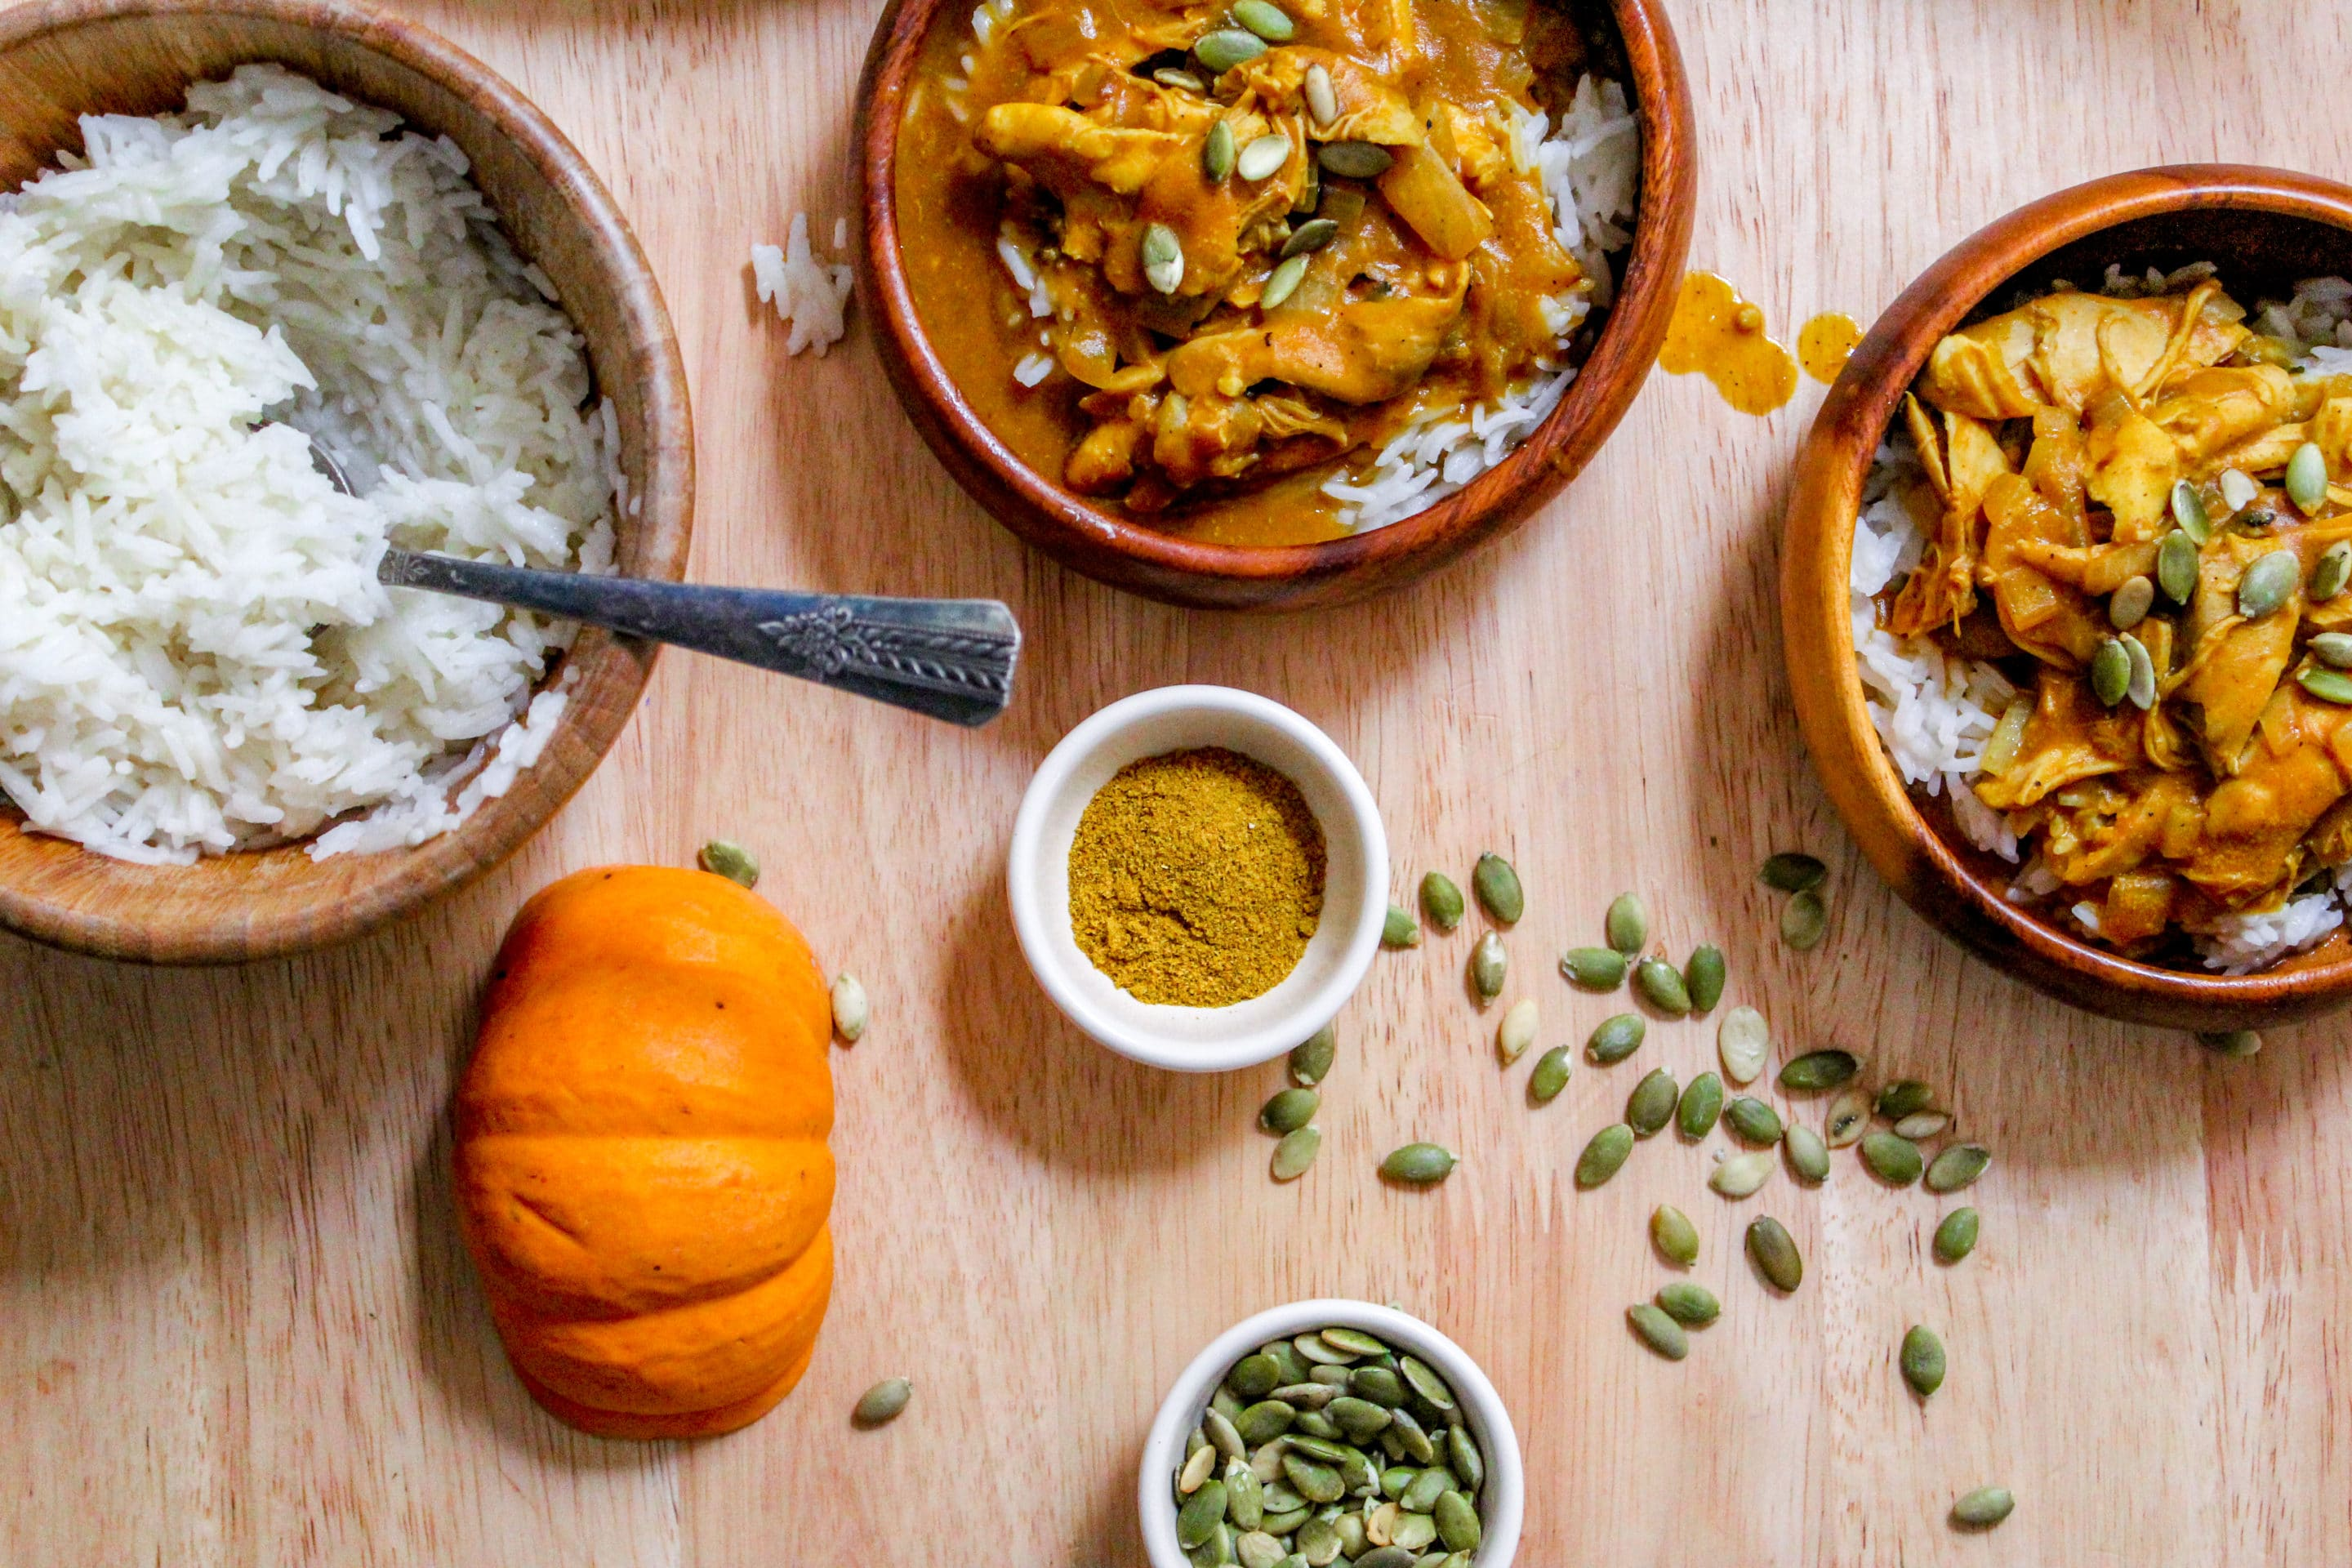 I love how this pumpkin chicken curry is extra creamy with the addition of pumpkin puree! It's an easy sauce and goes great with chicken, and I love making it on a busy weeknight when I get home late. It's sooooo much better the next day too so I love reuing it for leftovers! Yum recipe!